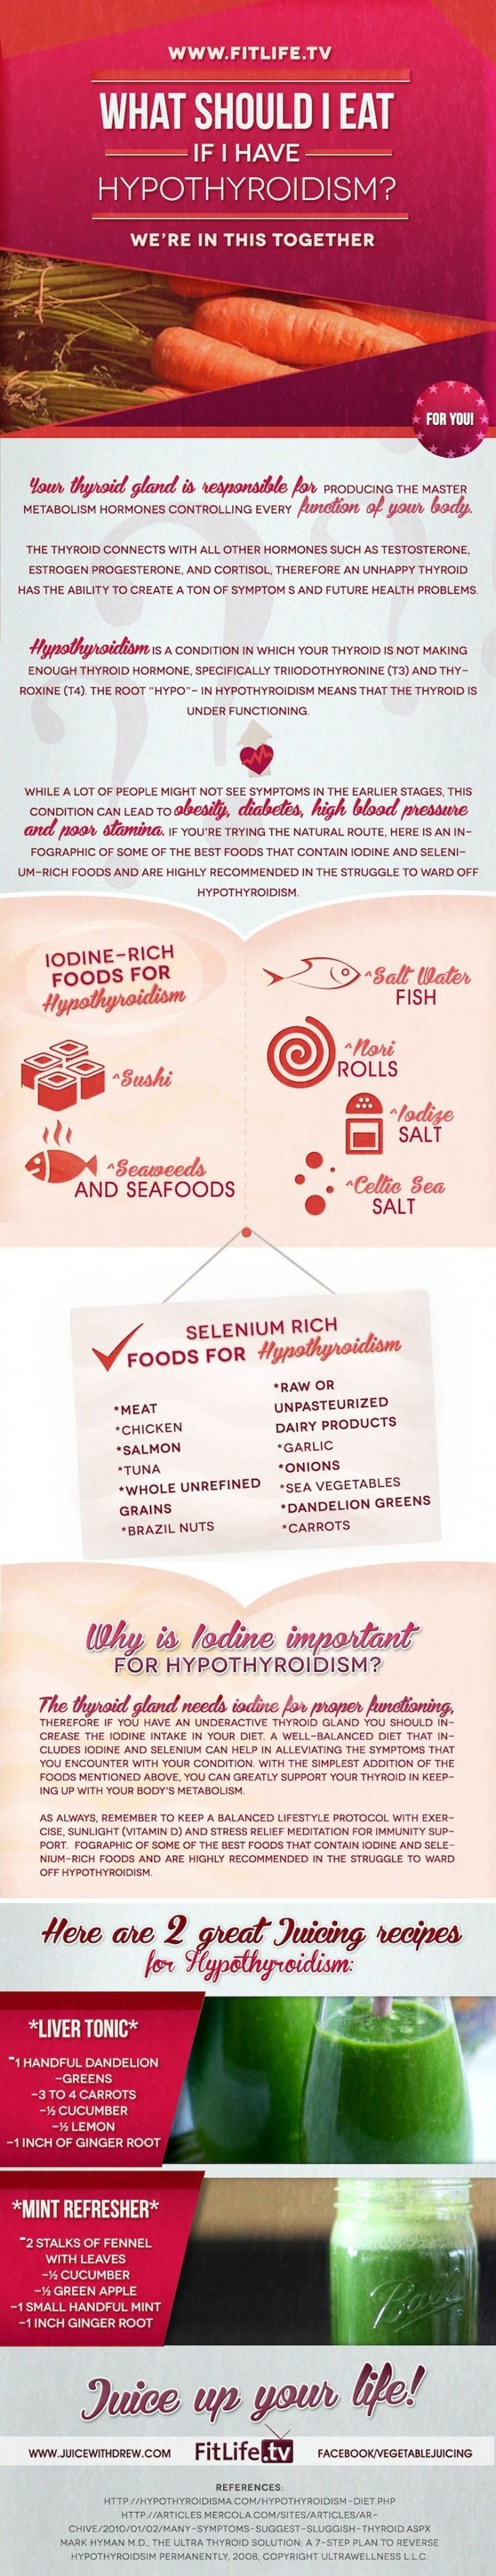 What To Eat If You Have Hypothyroidism (Infographic) - mindbodygreen.com